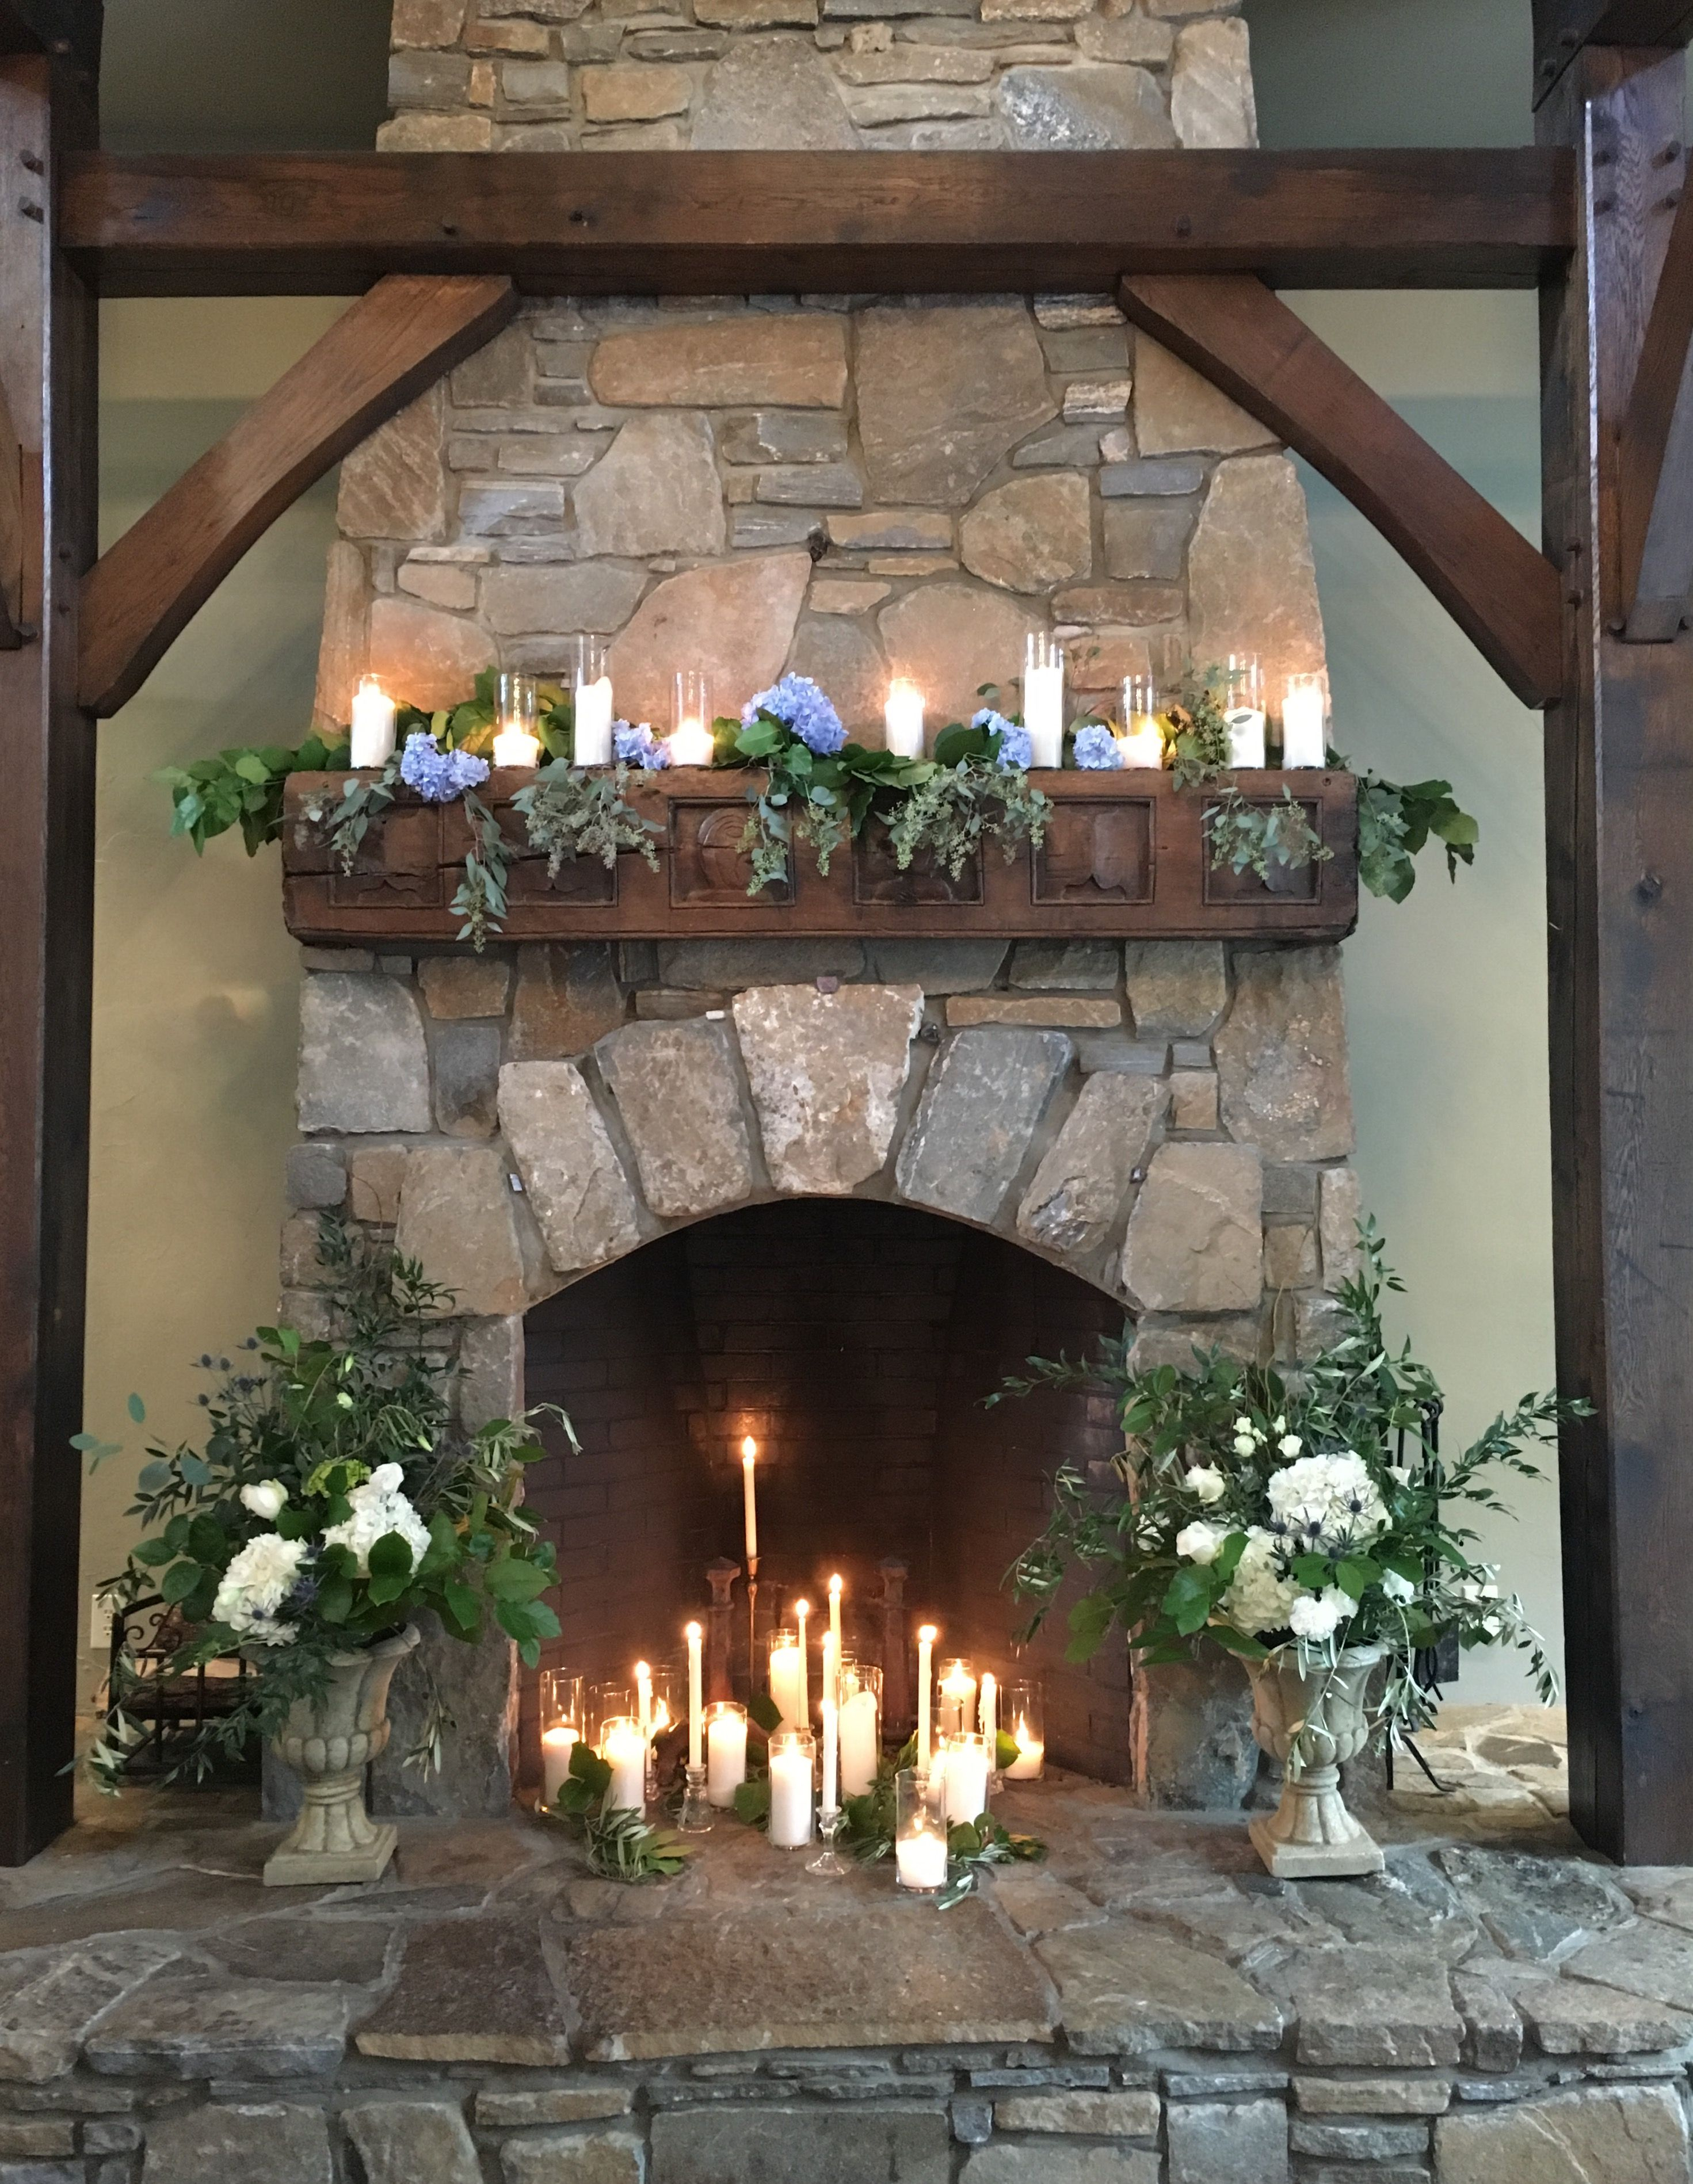 Ceremony fireplace inspo but with my colors and floral choices